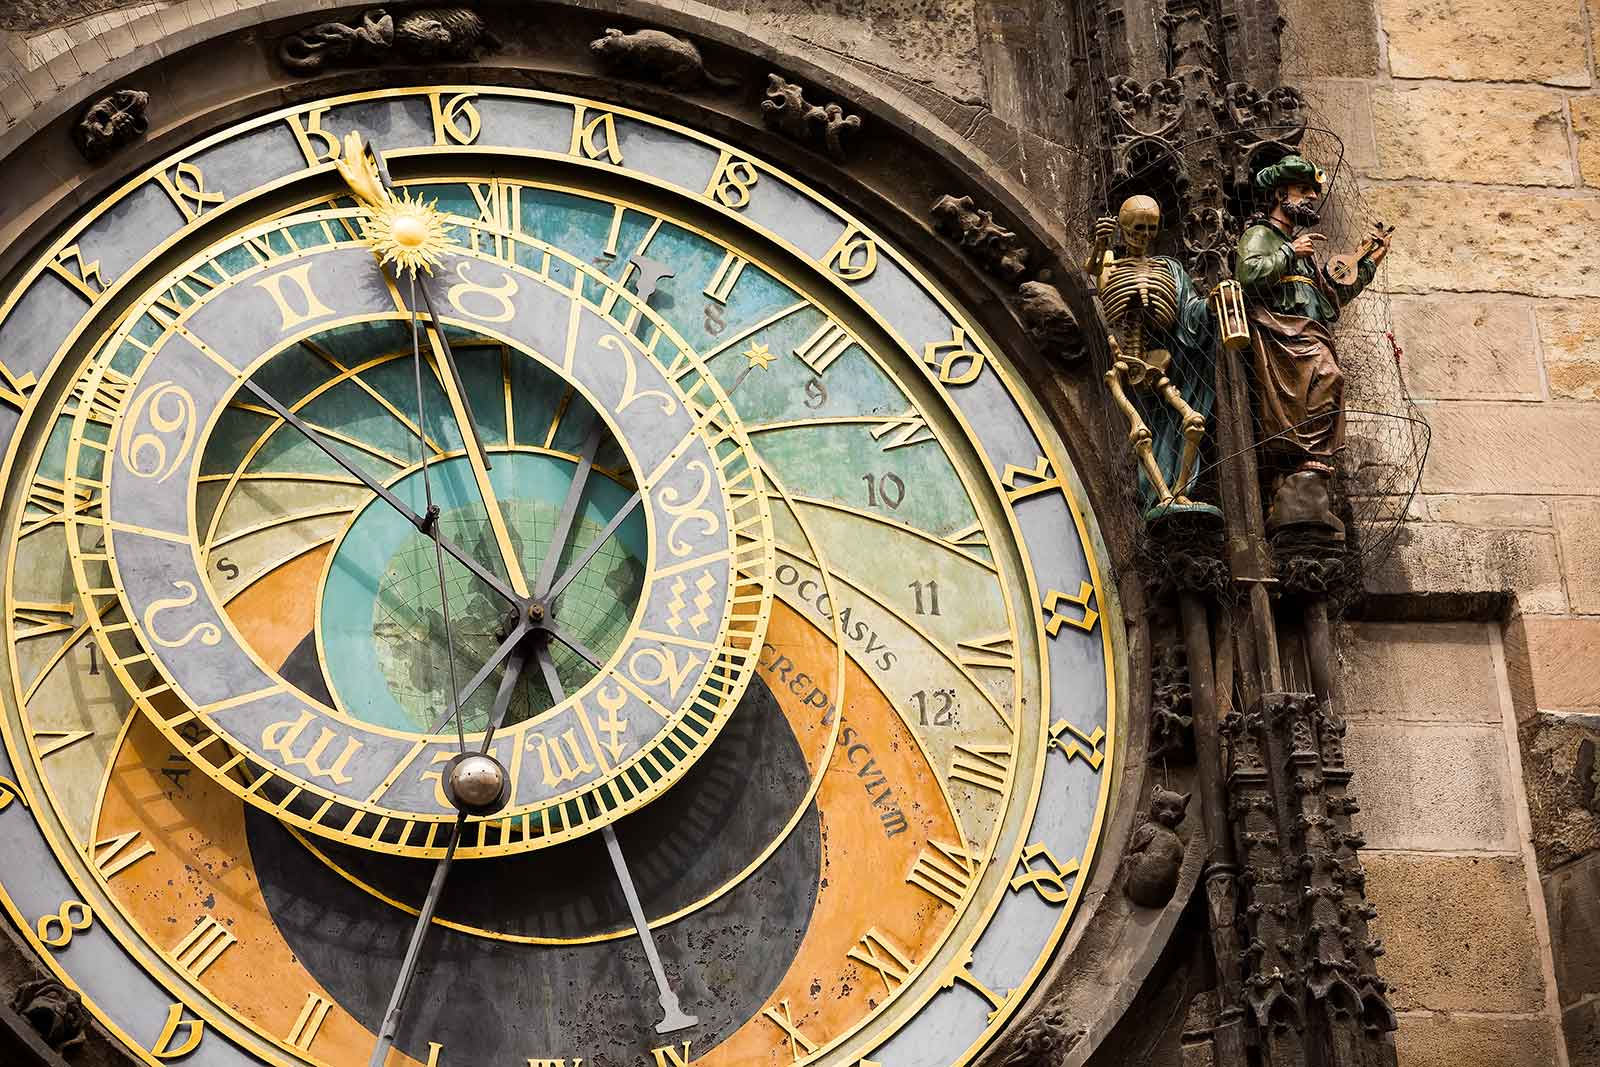 To fully appreciate the Astronomical Clock, join the crowd in front of the tower to watch the procession of the Twelve Apostles: on the hour, every hour, a small trap door opens and Christ marches out ahead of his disciples, while the skeleton of death tolls the bell to a defiant statue of a Turk.